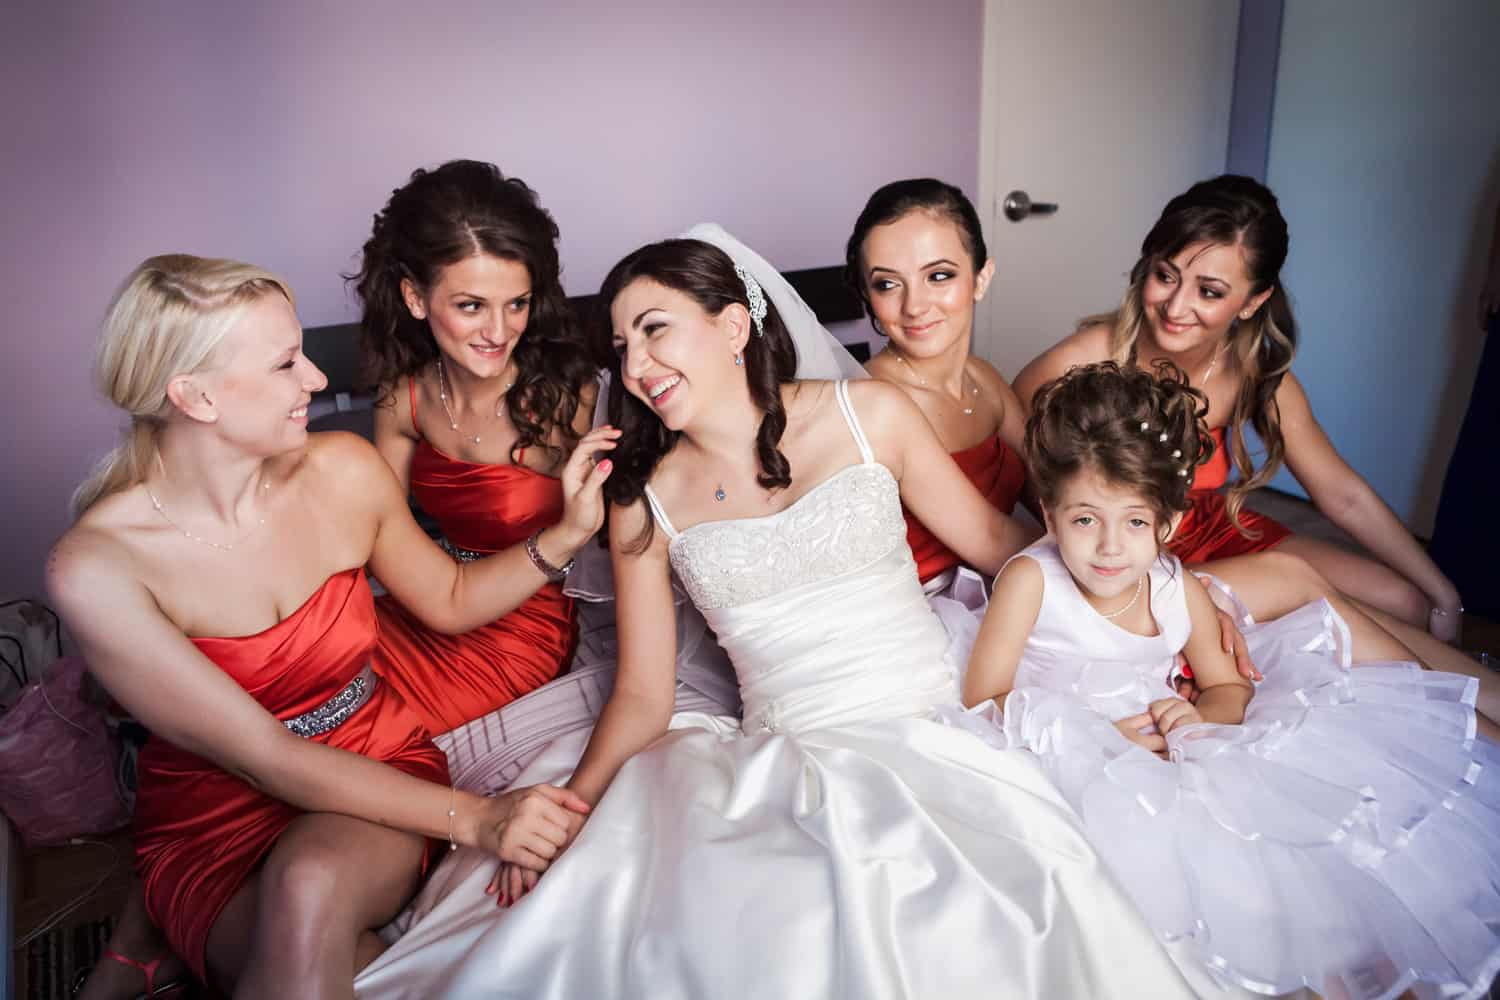 Bride and bridesmaids laughing on bed